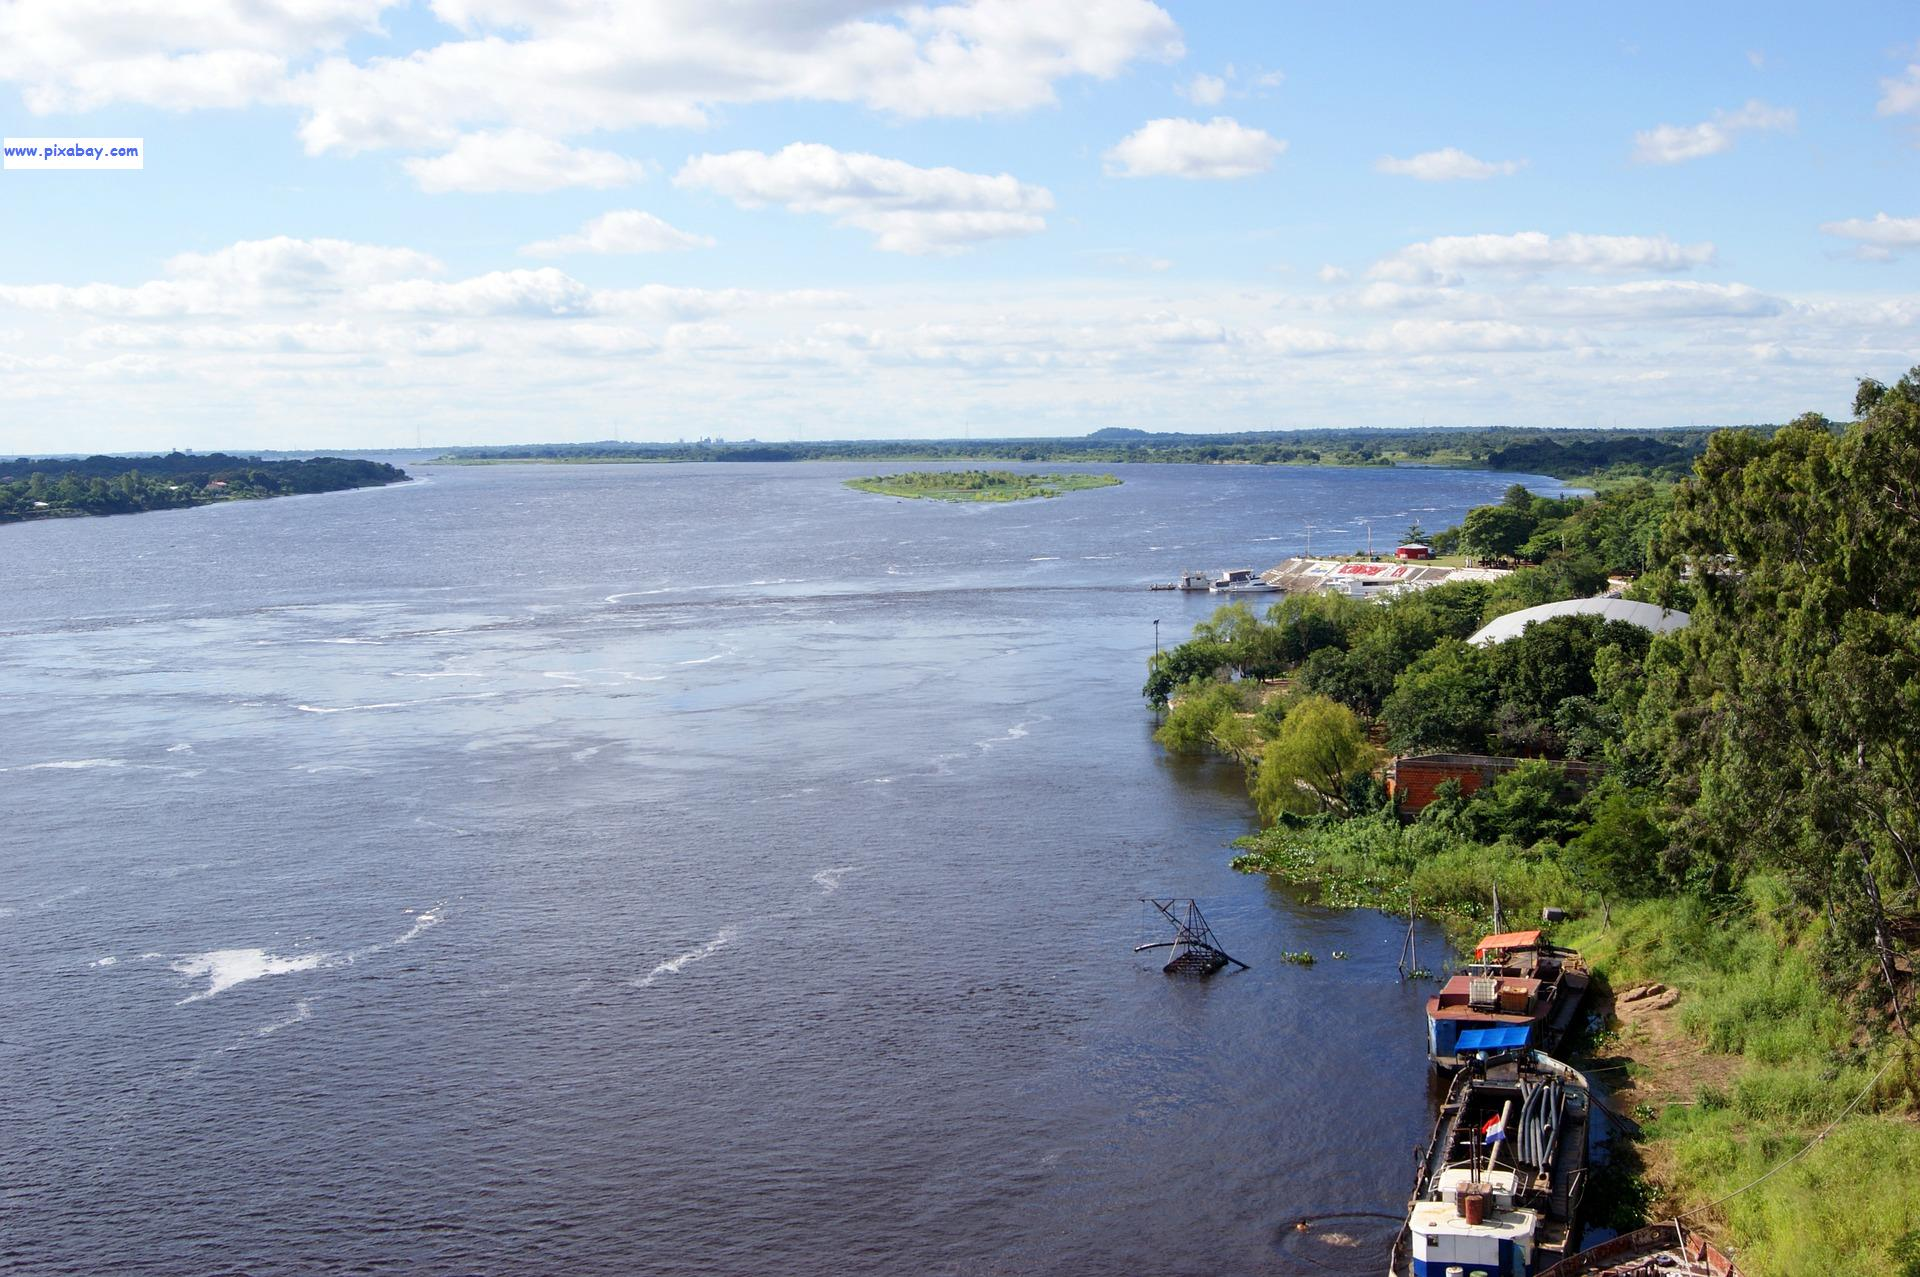 Fiume Paraguay